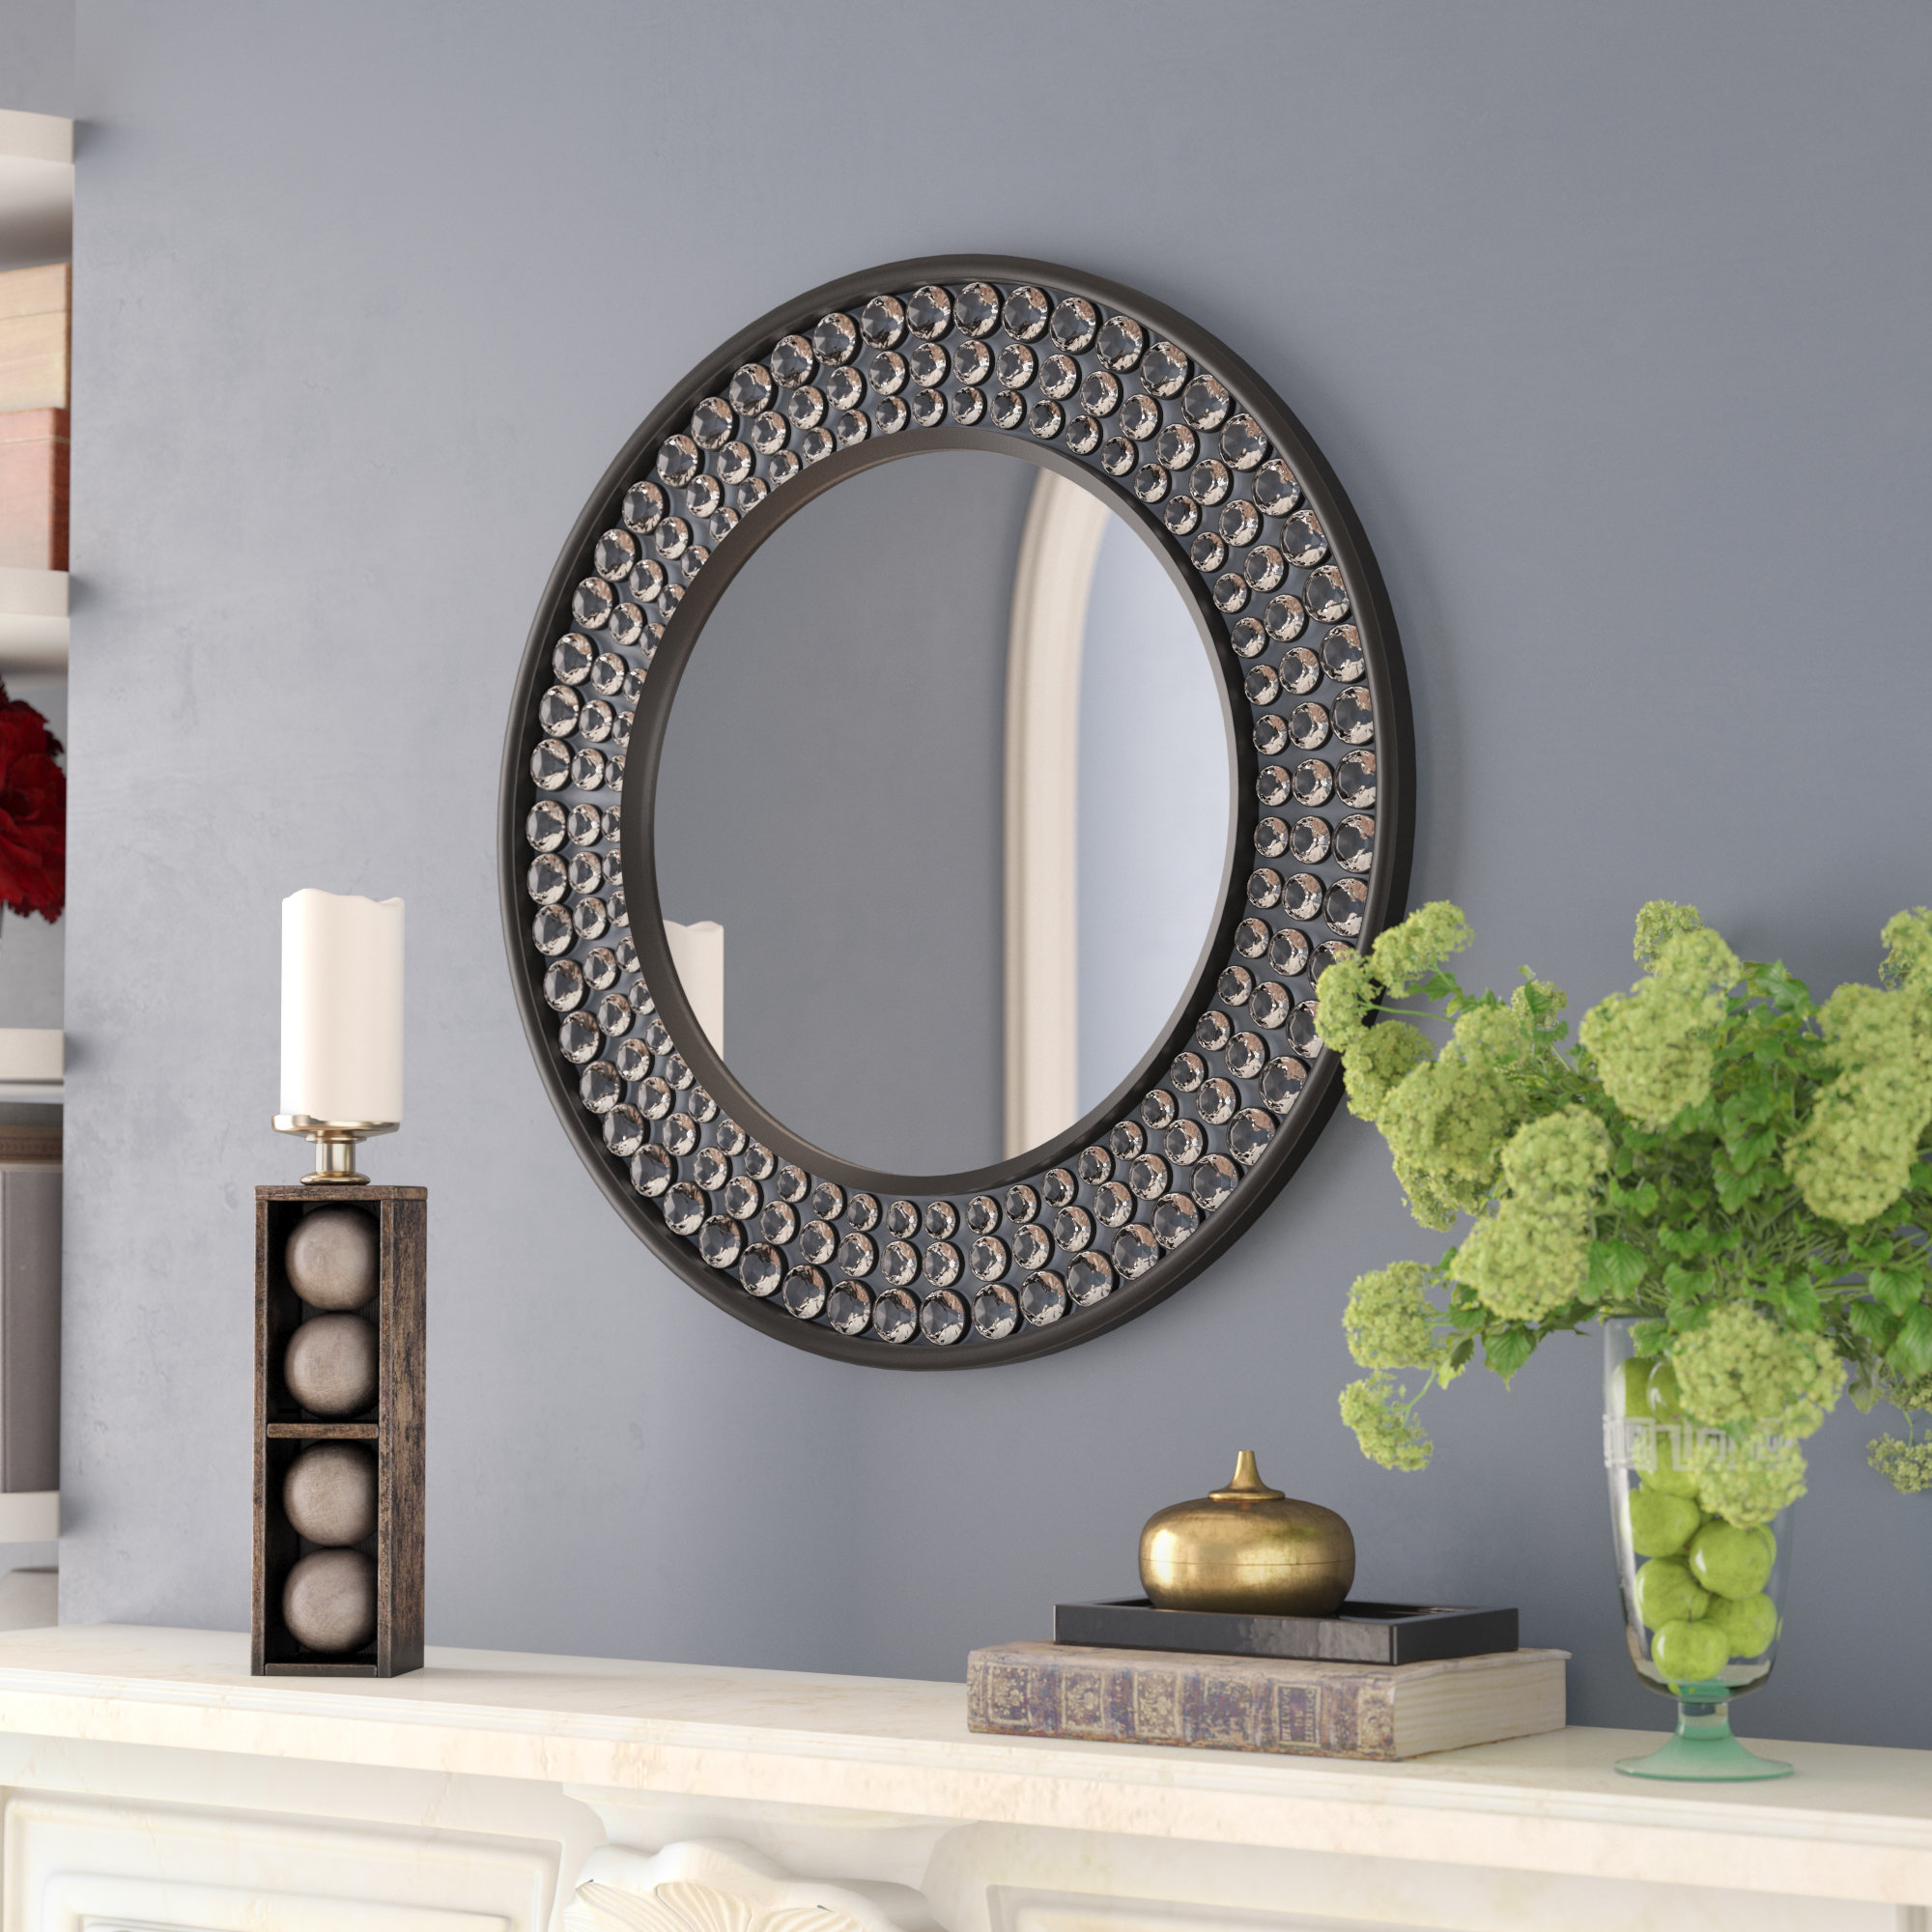 Valerian Jeweled Round Wall Mirror in Point Reyes Molten Round Wall Mirrors (Image 27 of 30)